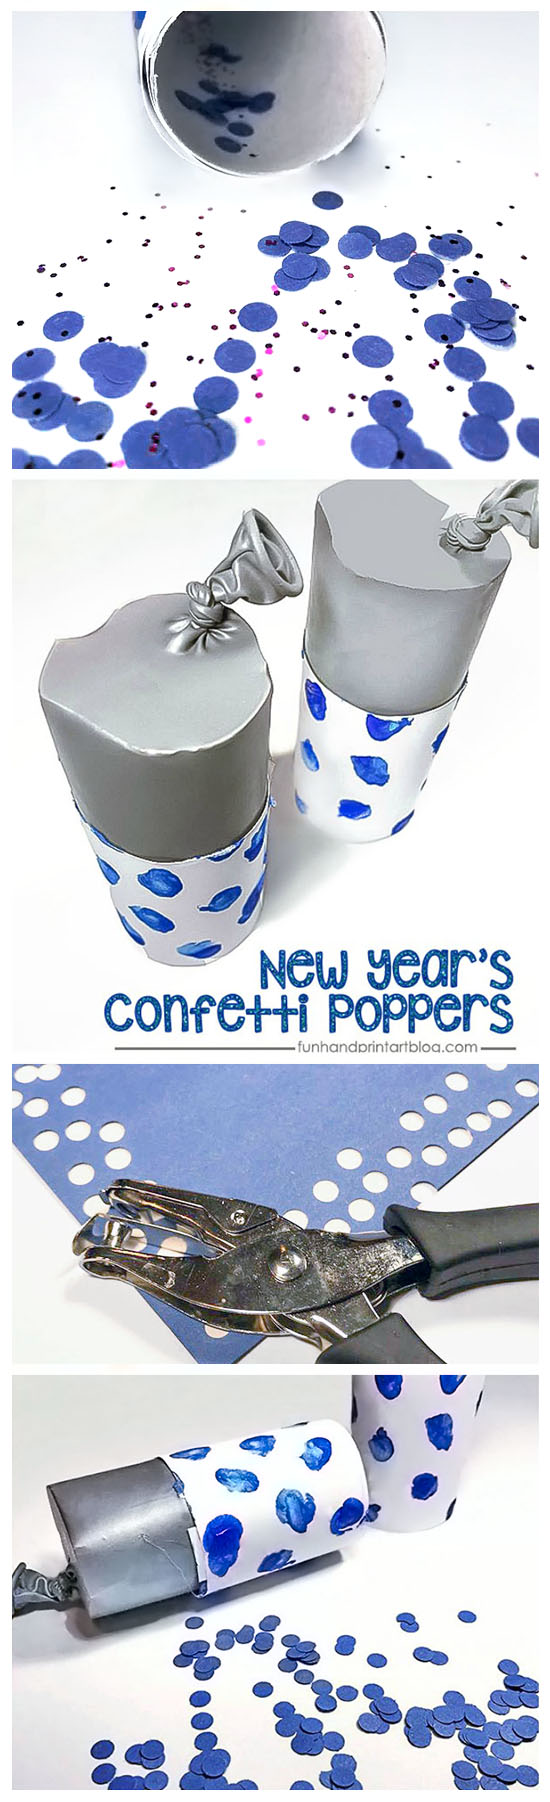 New Year's Eve Cardboard Tube Party Poppers with Confetti for Kids to Make